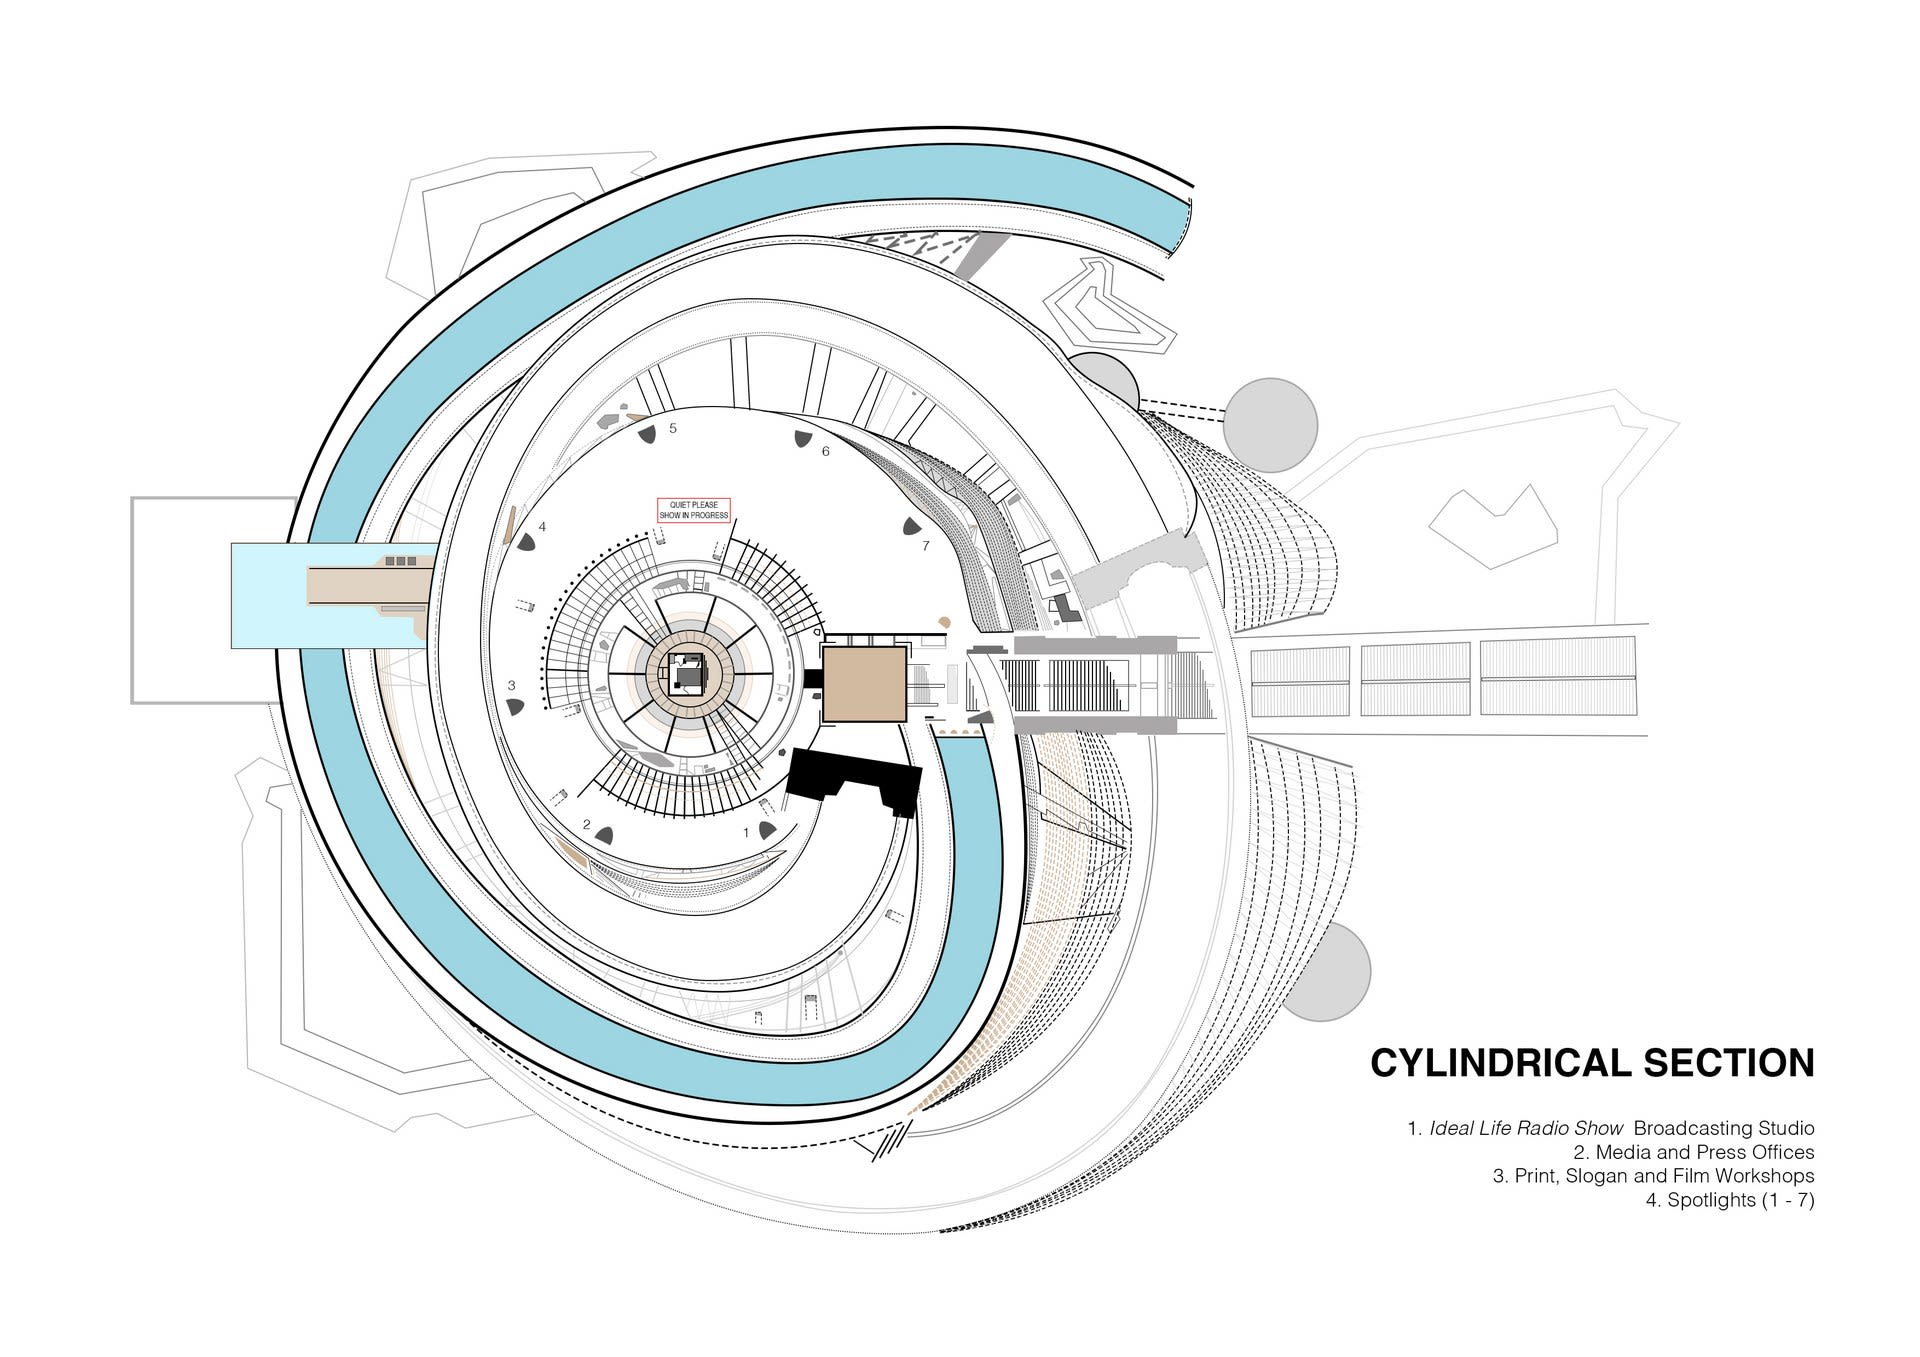 Lacuna Tower - Cylindrical Section Floor Plan